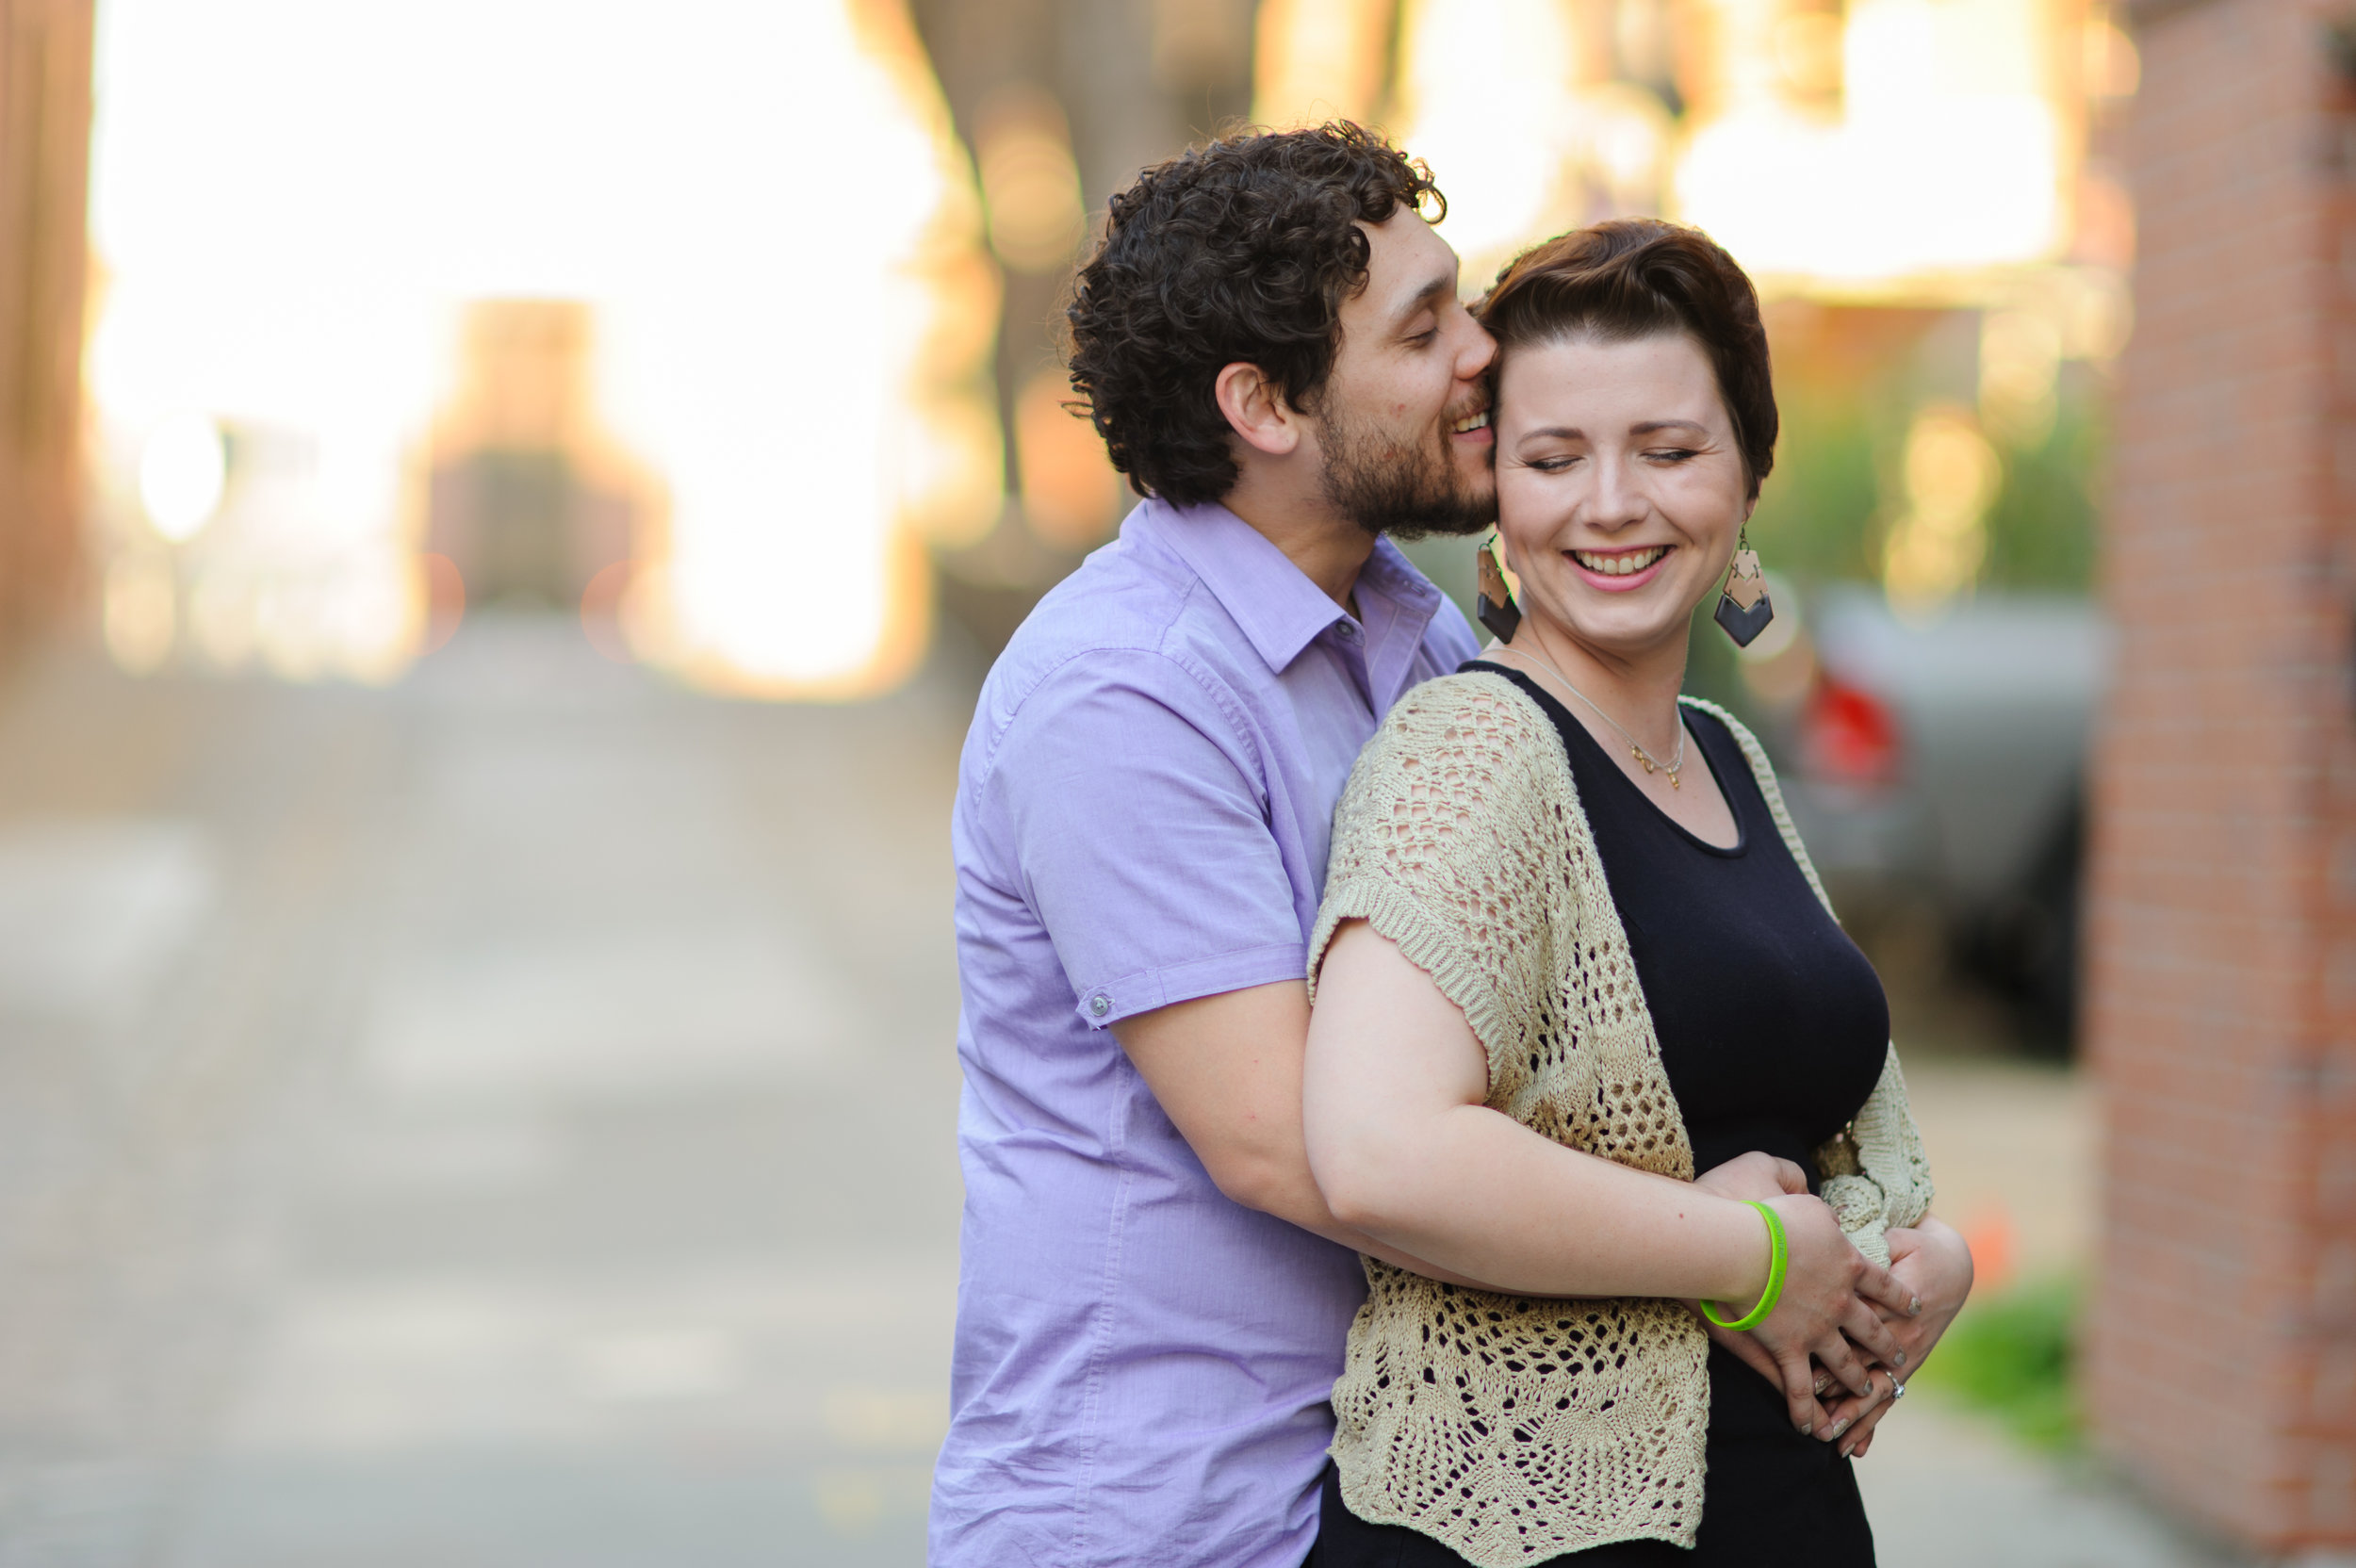 chloe-evan-005-old-sacramento-engagement-session-wedding-photographer-katherine-nicole-photography.JPG